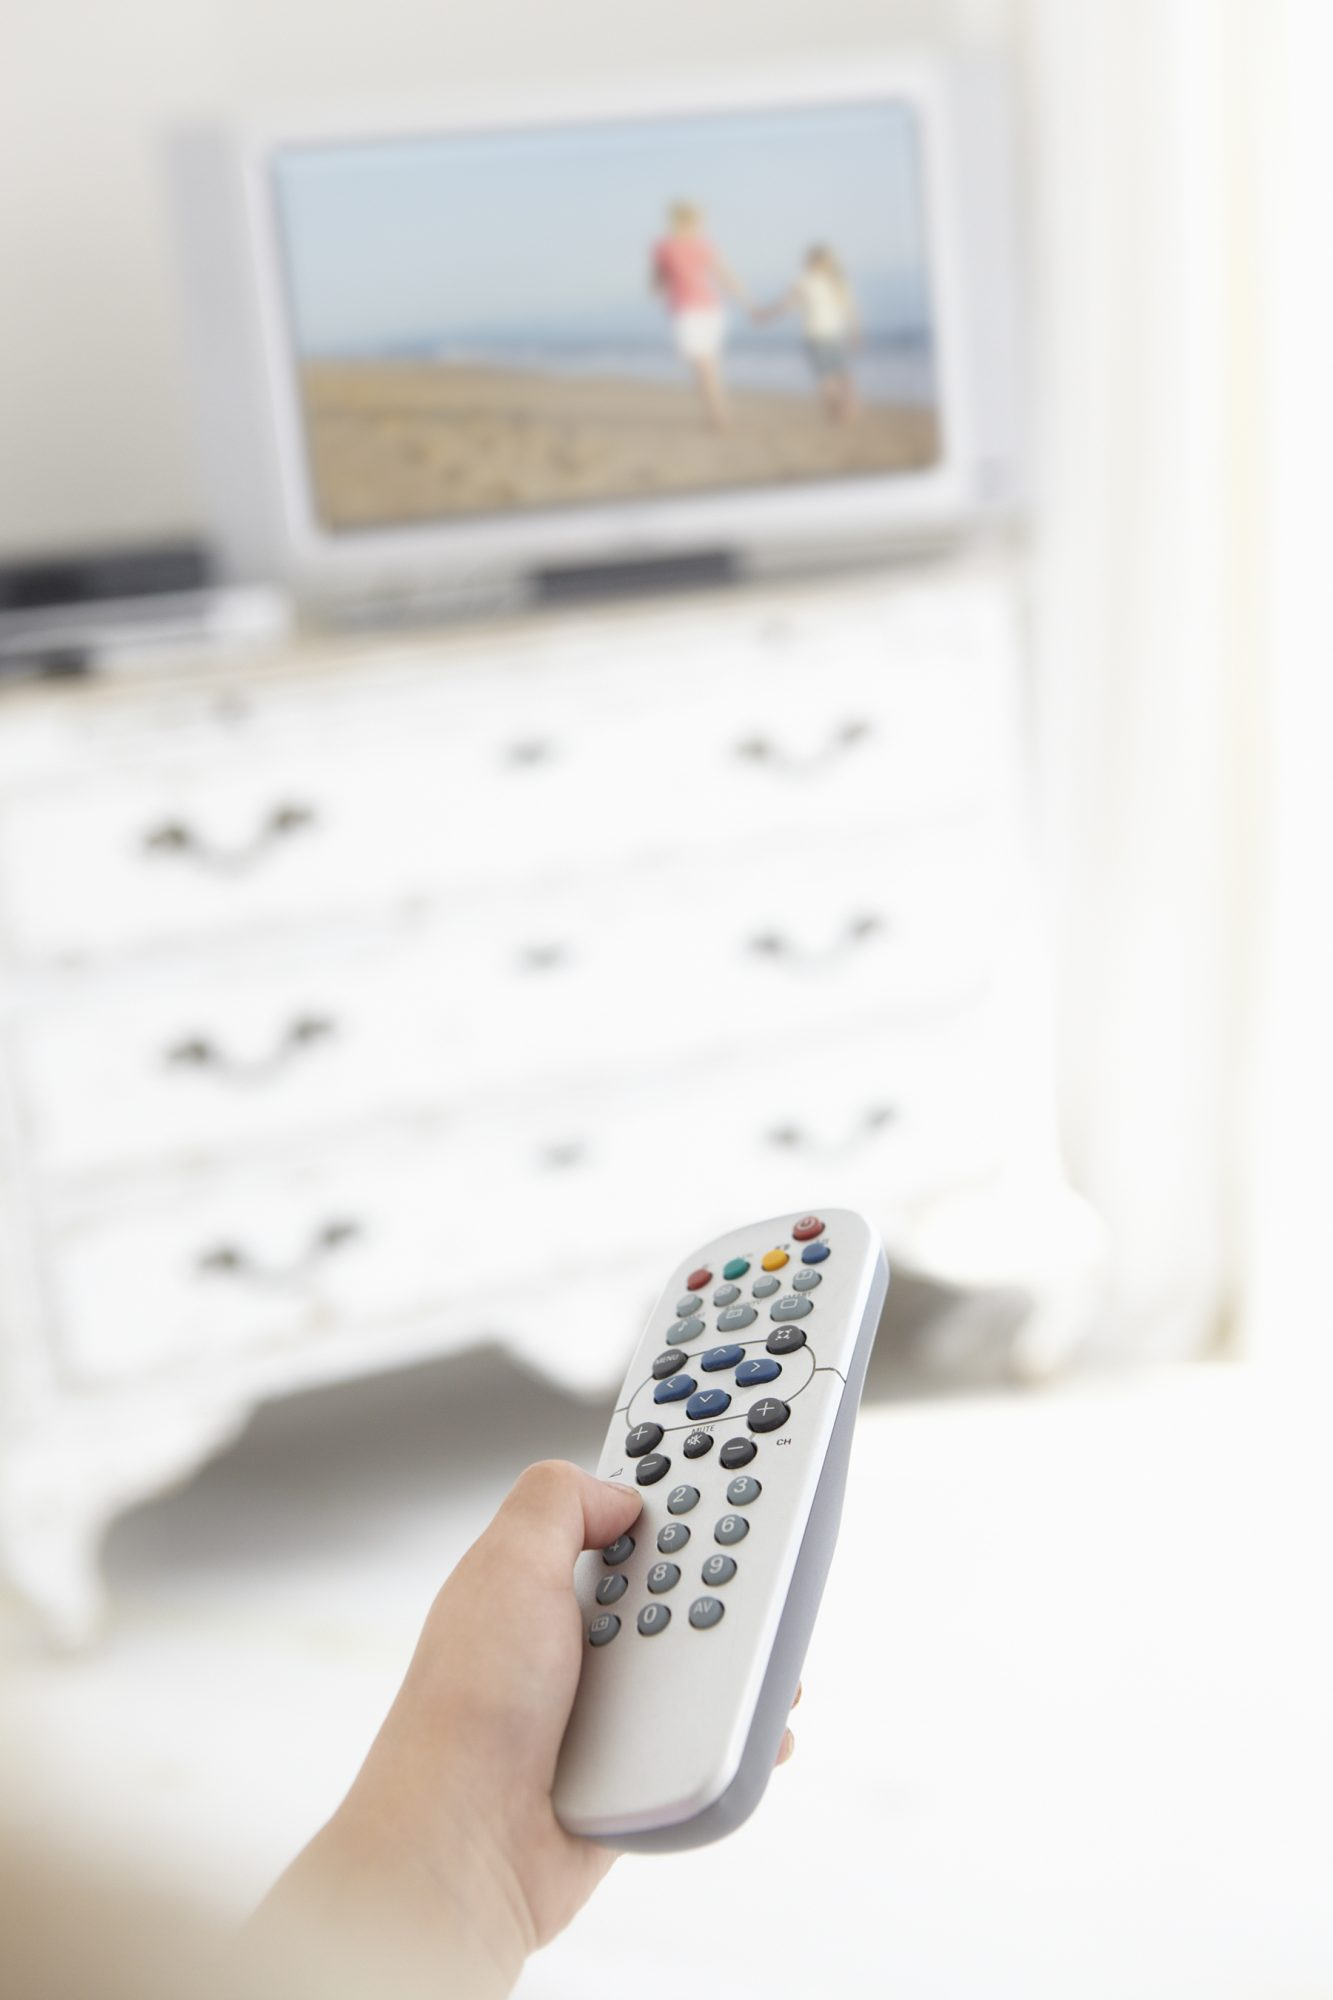 Television in child's bedroom